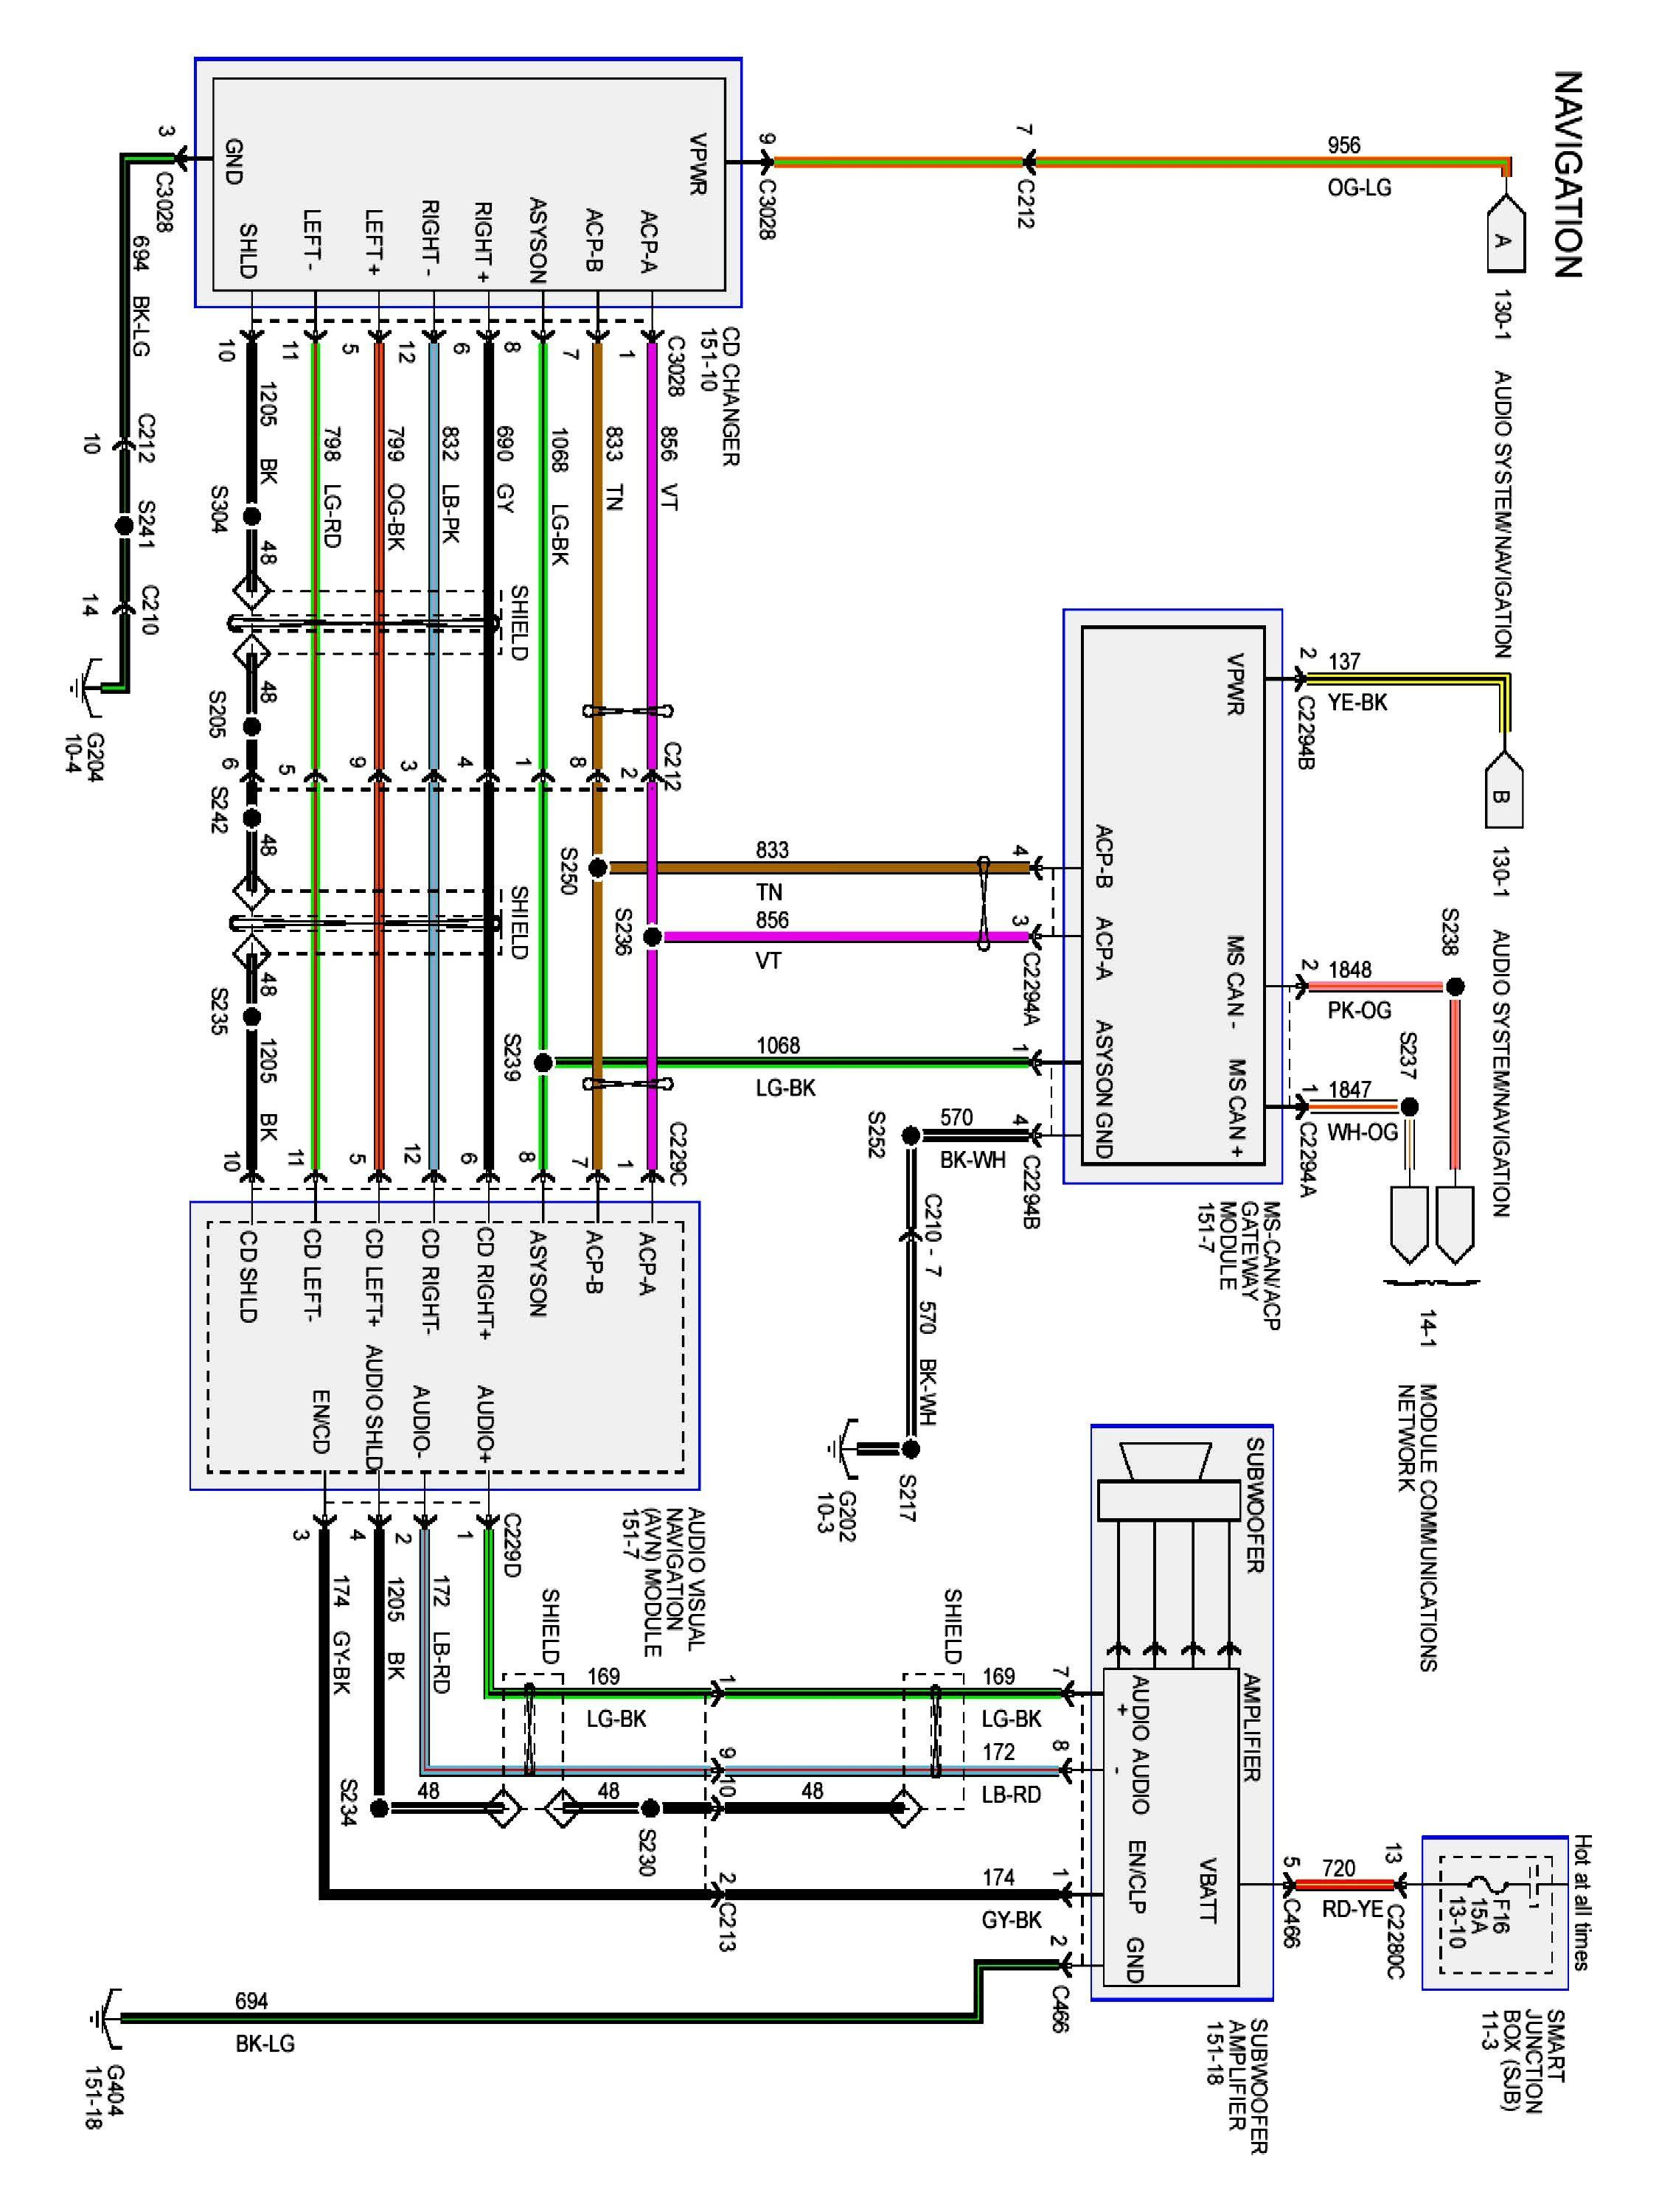 Toyota Jbl Amplifier Wiring Diagram | Ford expedition ... on 2002 ford f-150 trailer wiring diagram, 2000 ford f-150 trailer wiring diagram, 2012 ford f150 trailer wiring diagram, 2010 ford f-150 trailer wiring diagram, 2011 ford f150 trailer wiring diagram, 1994 ford ranger trailer wiring diagram, 1993 ford ranger trailer wiring diagram, 1999 ford f-250 trailer wiring diagram, 2008 ford f450 trailer wiring diagram, 1998 ford expedition trailer wiring diagram, 2009 ford f-150 trailer wiring diagram,